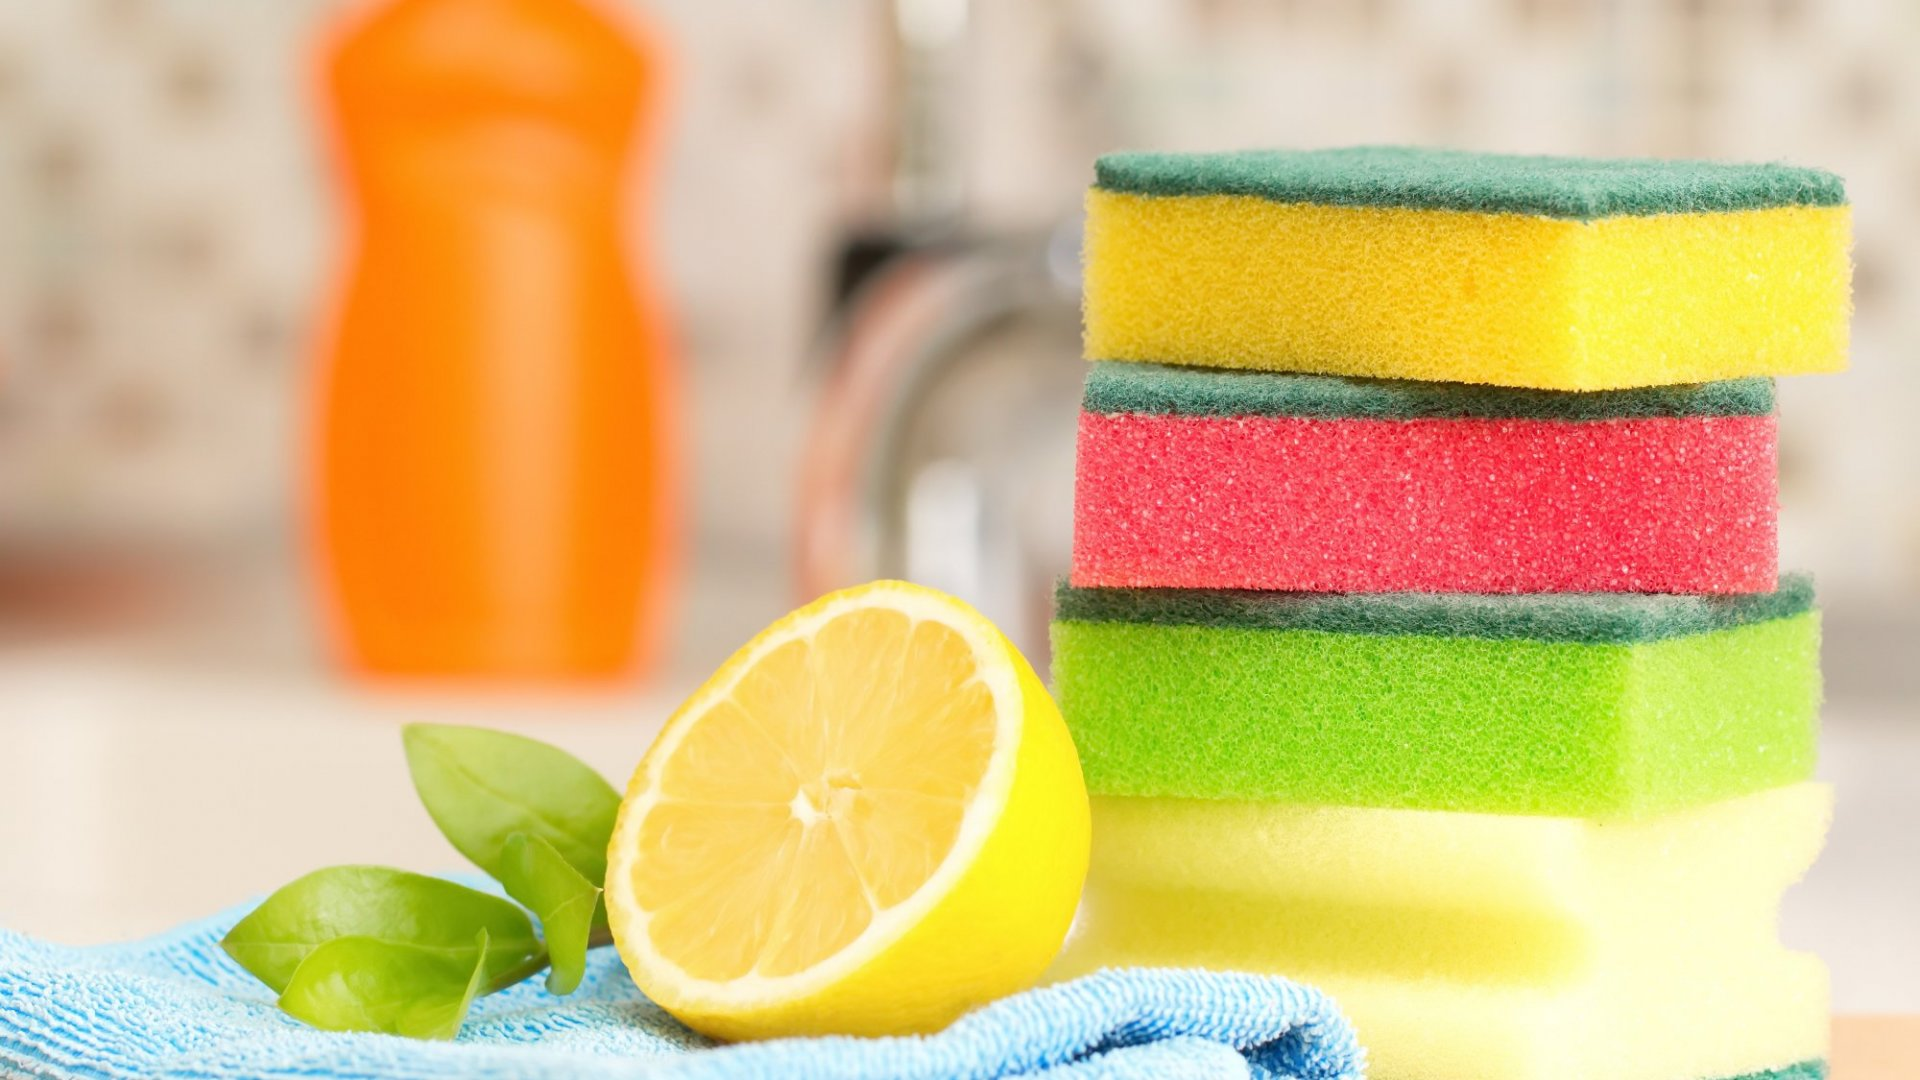 It's Time for Spring Cleaning. Here Are 30 Old Habits You Should Scrub Away